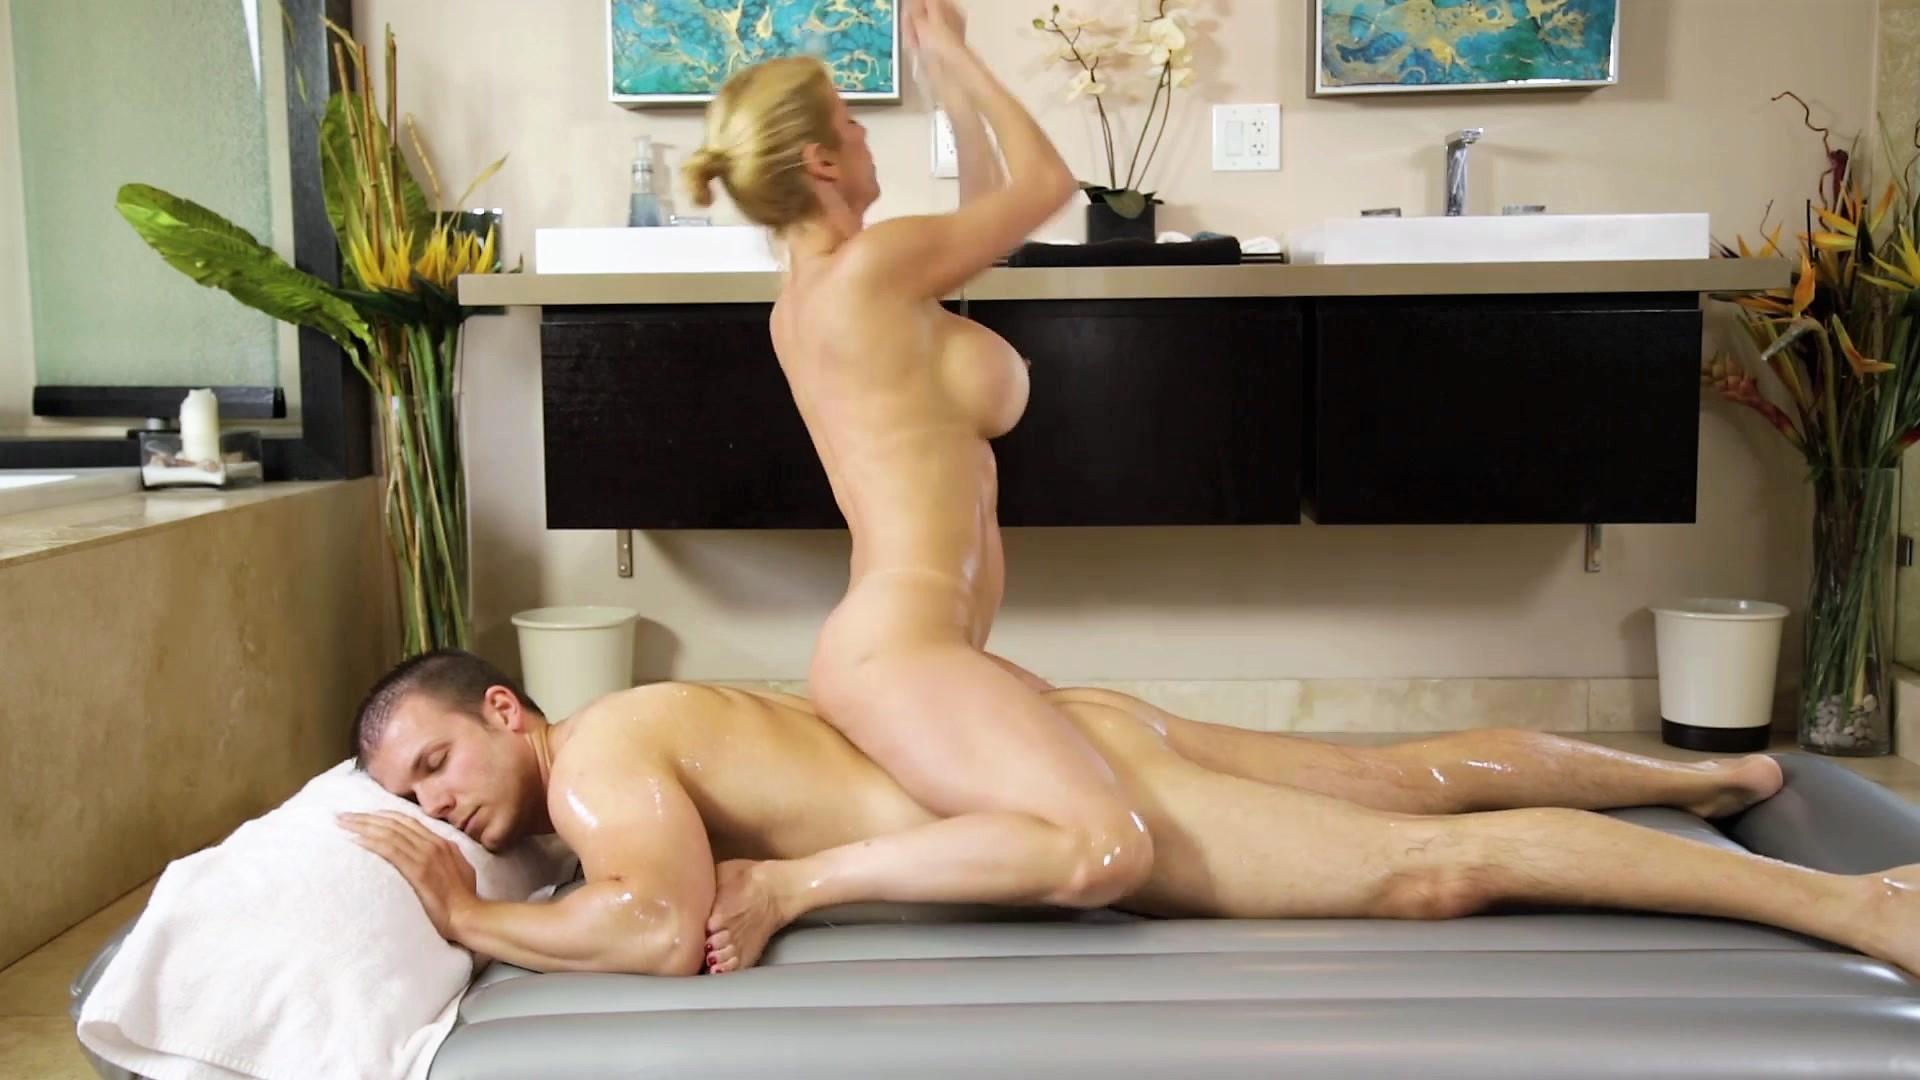 Cock Riding MILF Porn Reverse Cowgirl Woman on Top